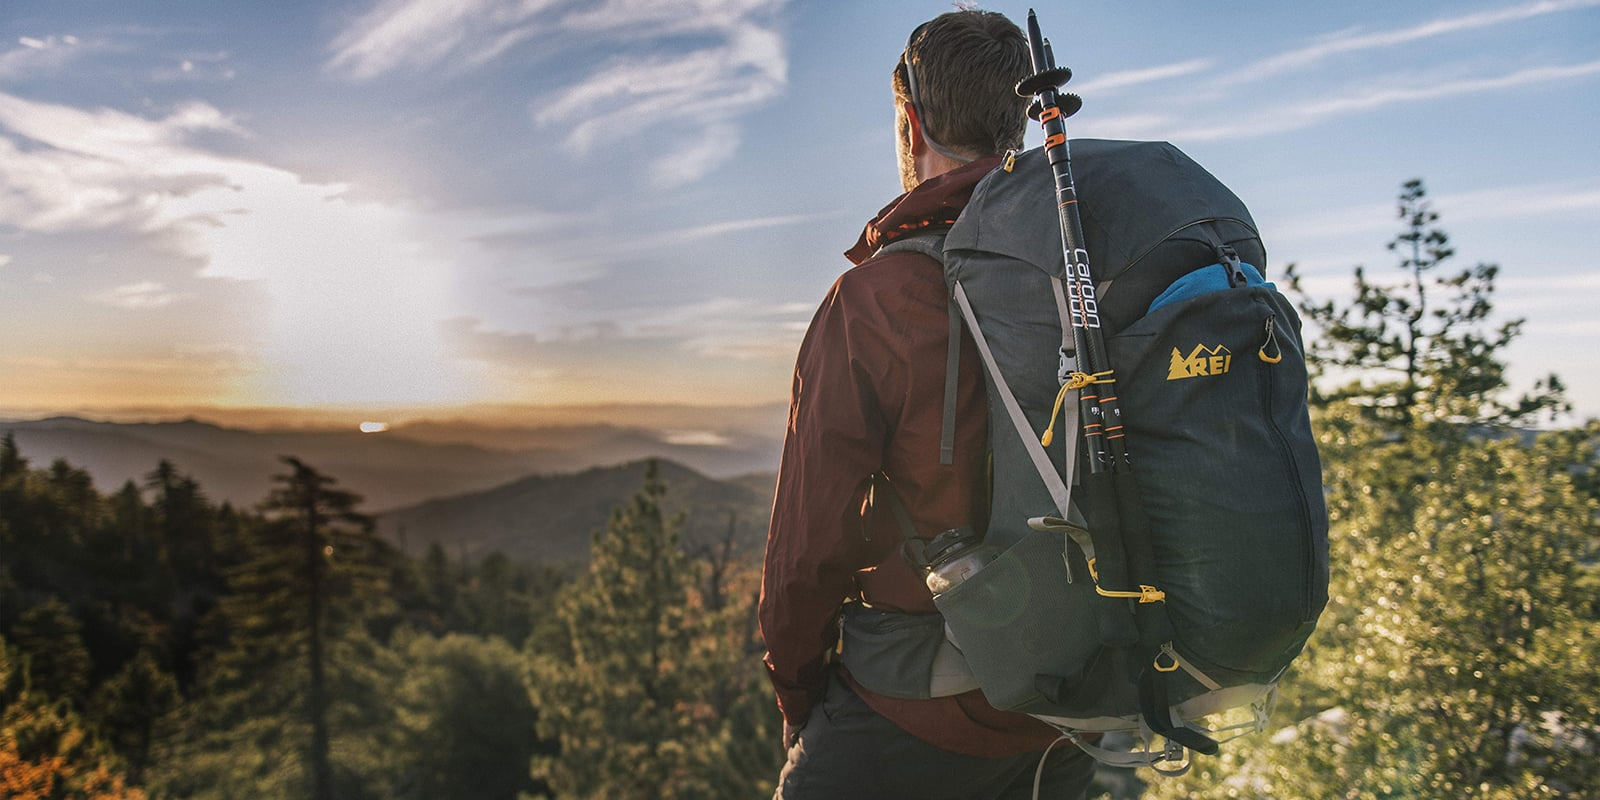 Introduction to Hiking: What to Pack